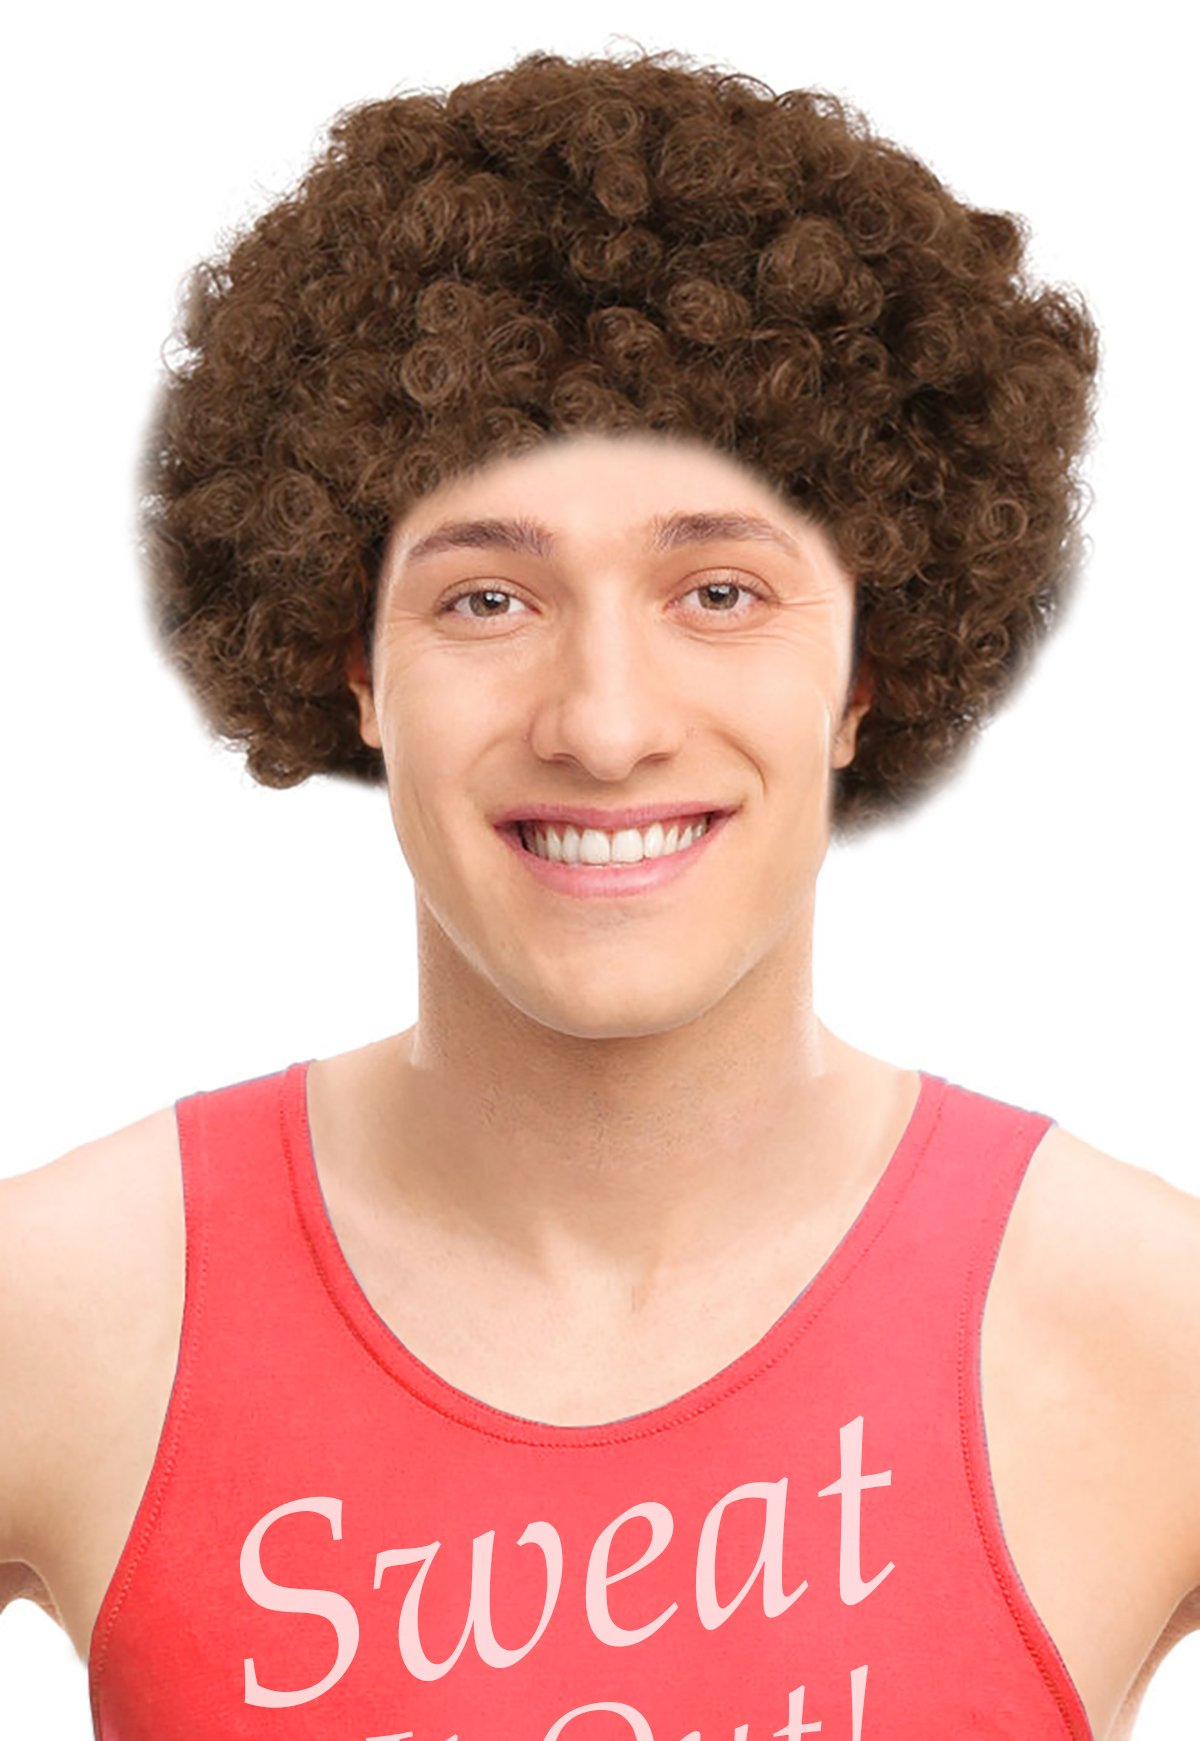 richard simmons costume. workout instructor wig for richard simmons ideal costume m